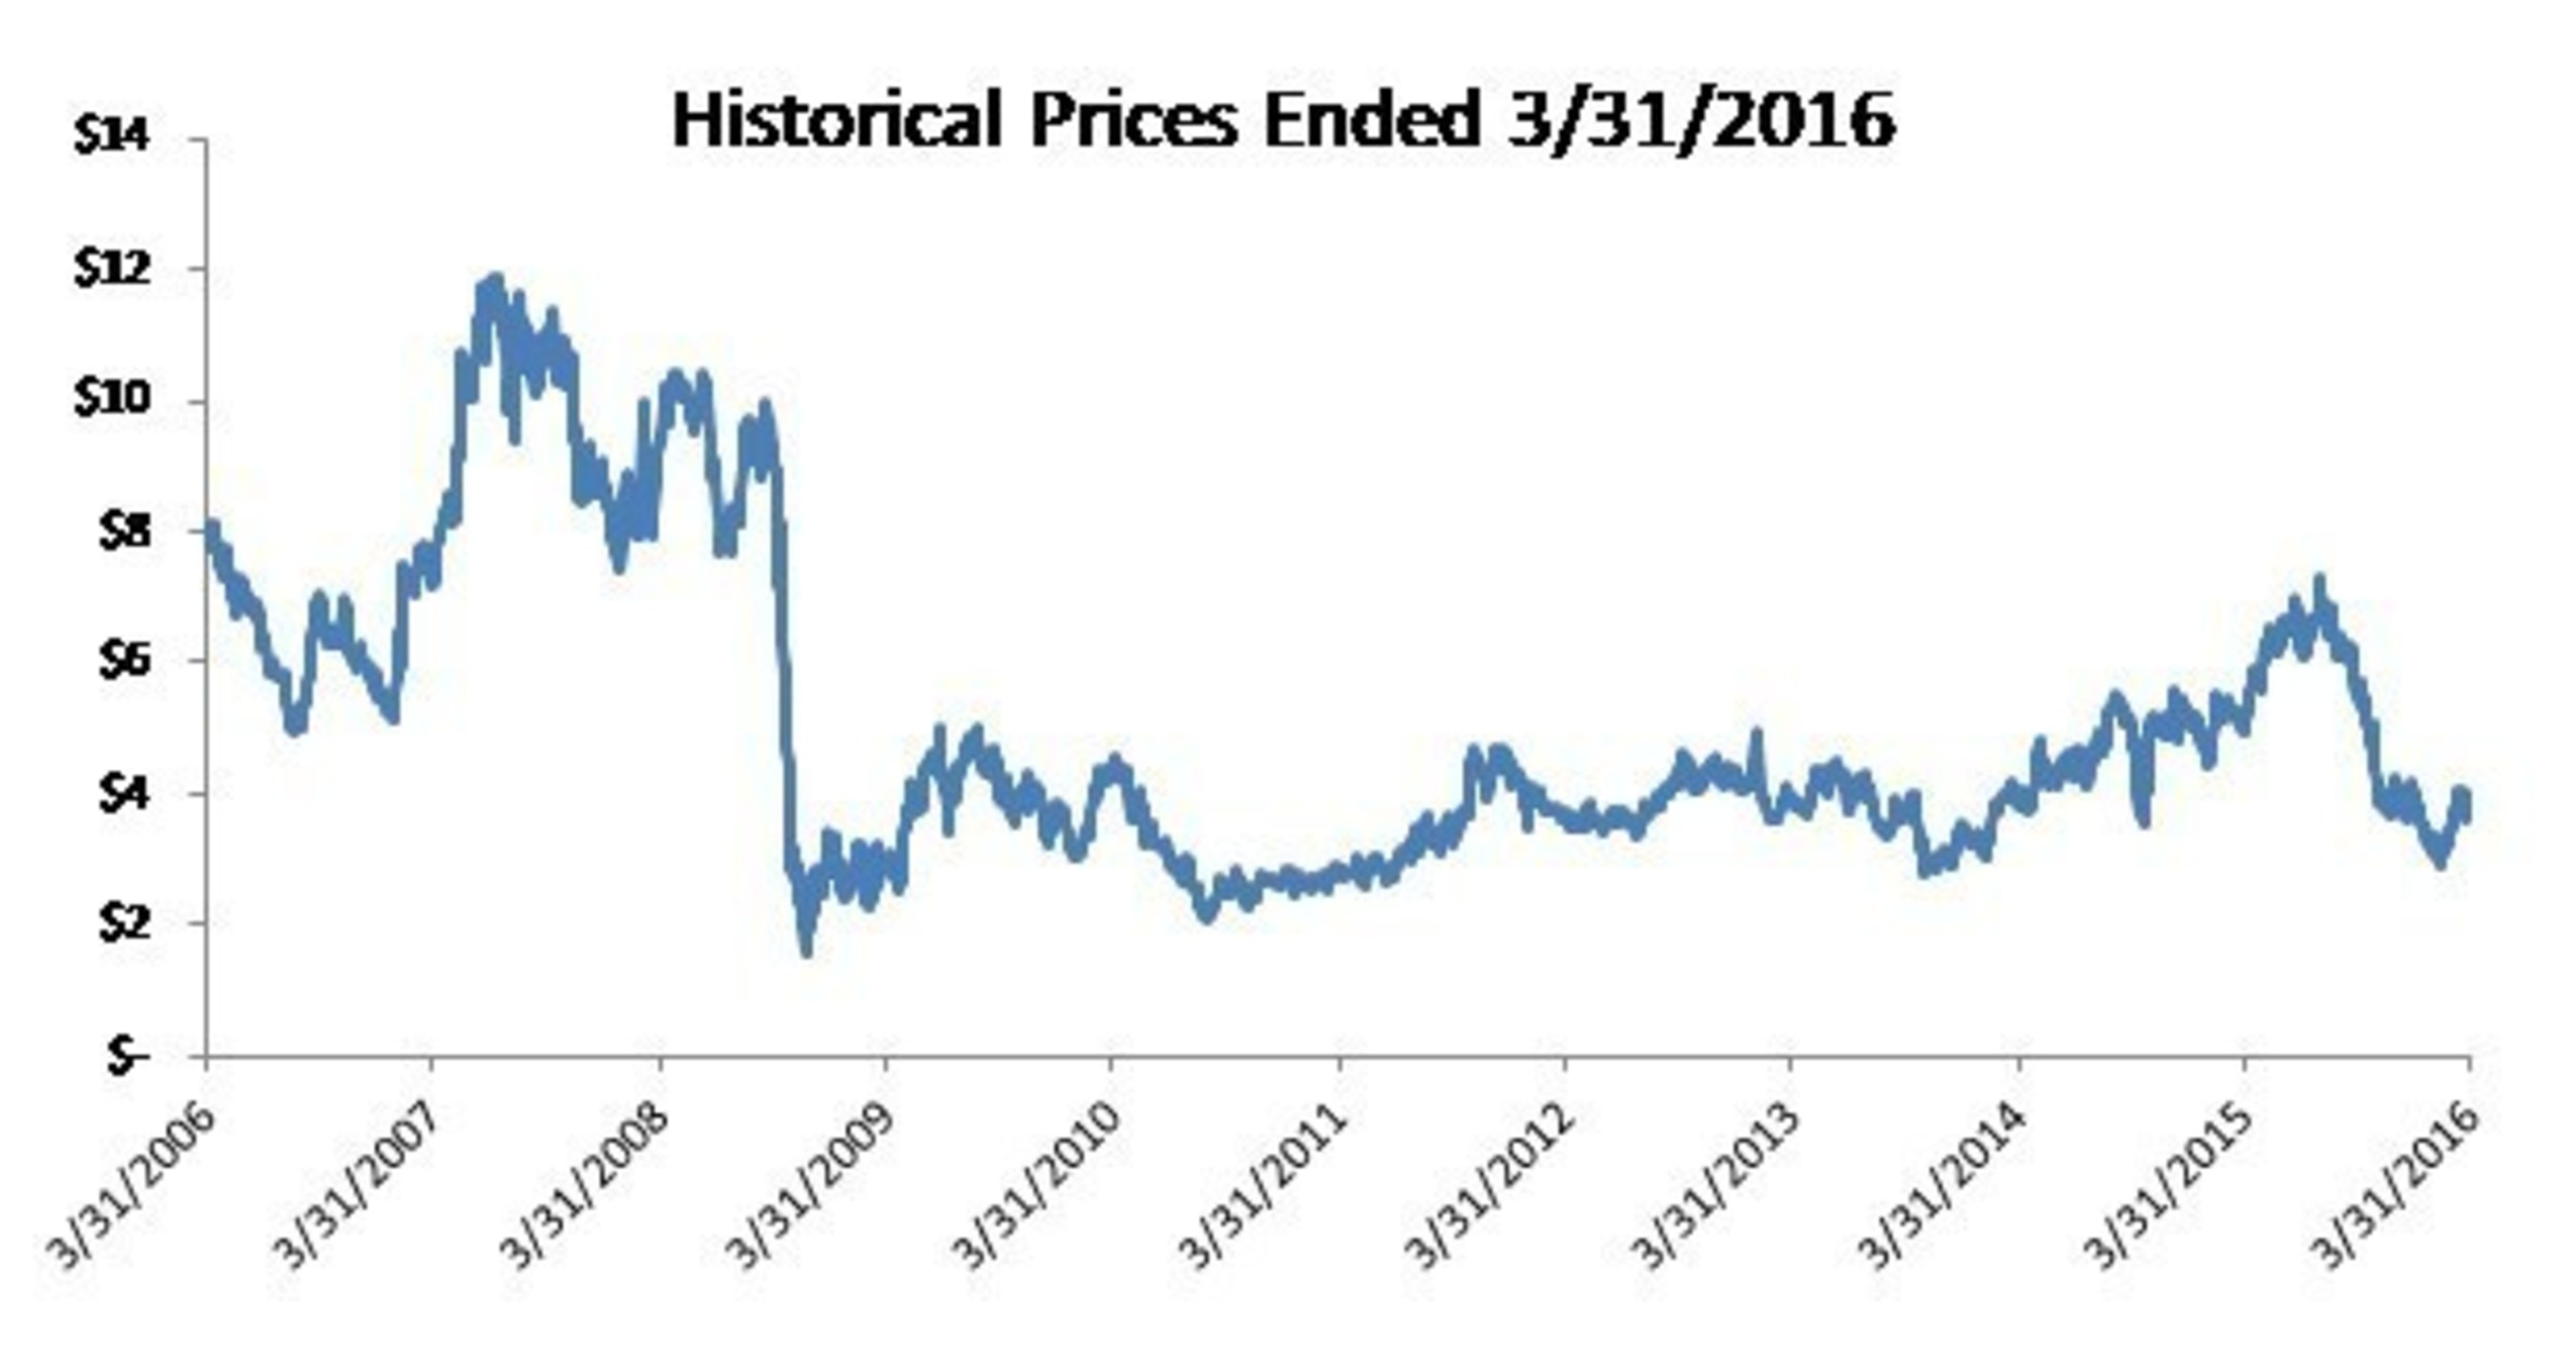 Historical Prices Ended 3/31/2016